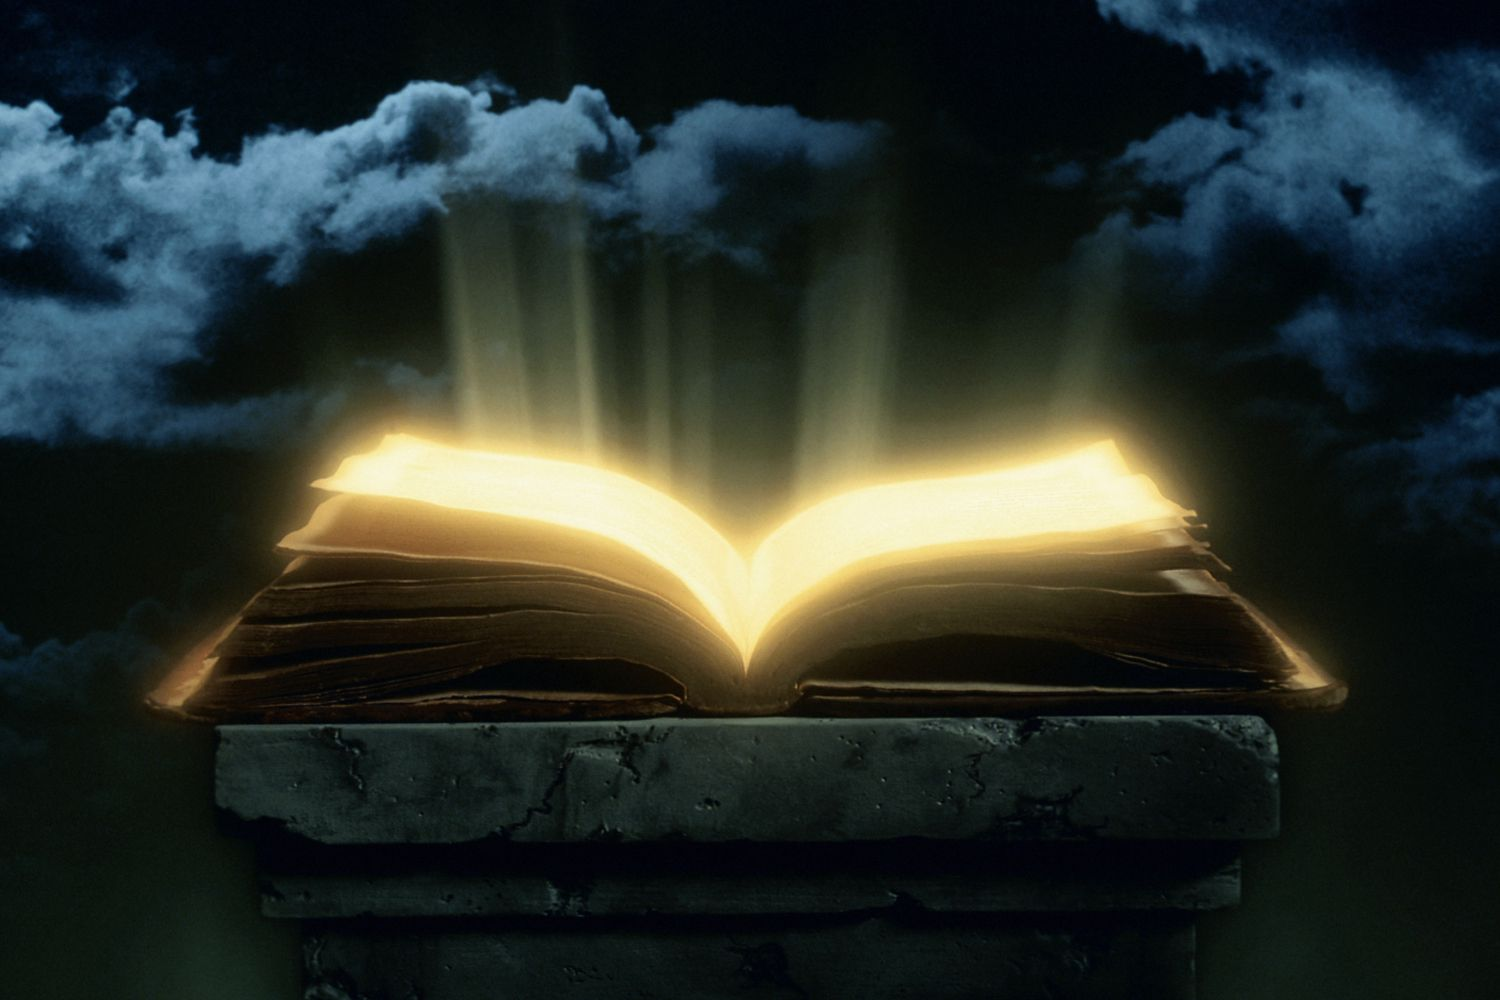 What Is the Book of Life in the Bible?